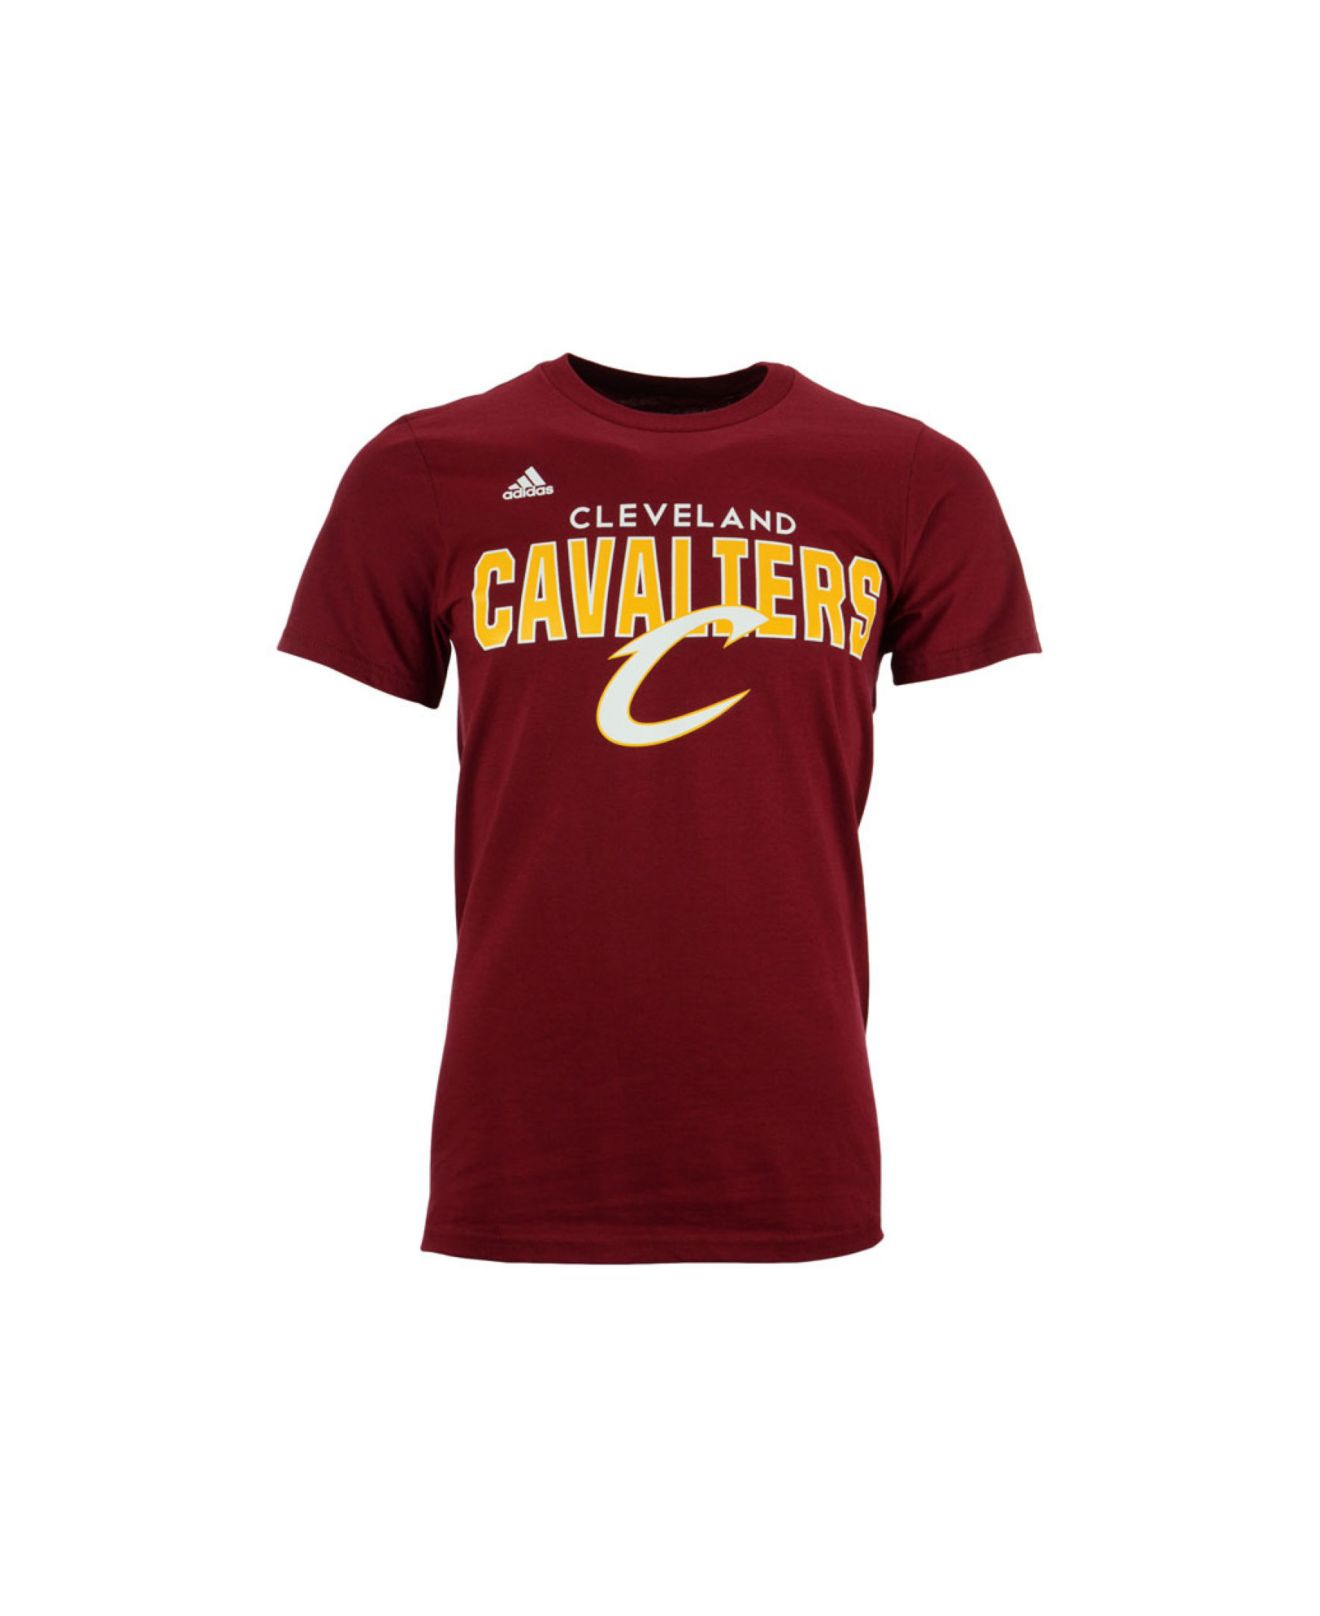 Adidas originals men 39 s short sleeve cleveland cavaliers for Cleveland t shirt printing